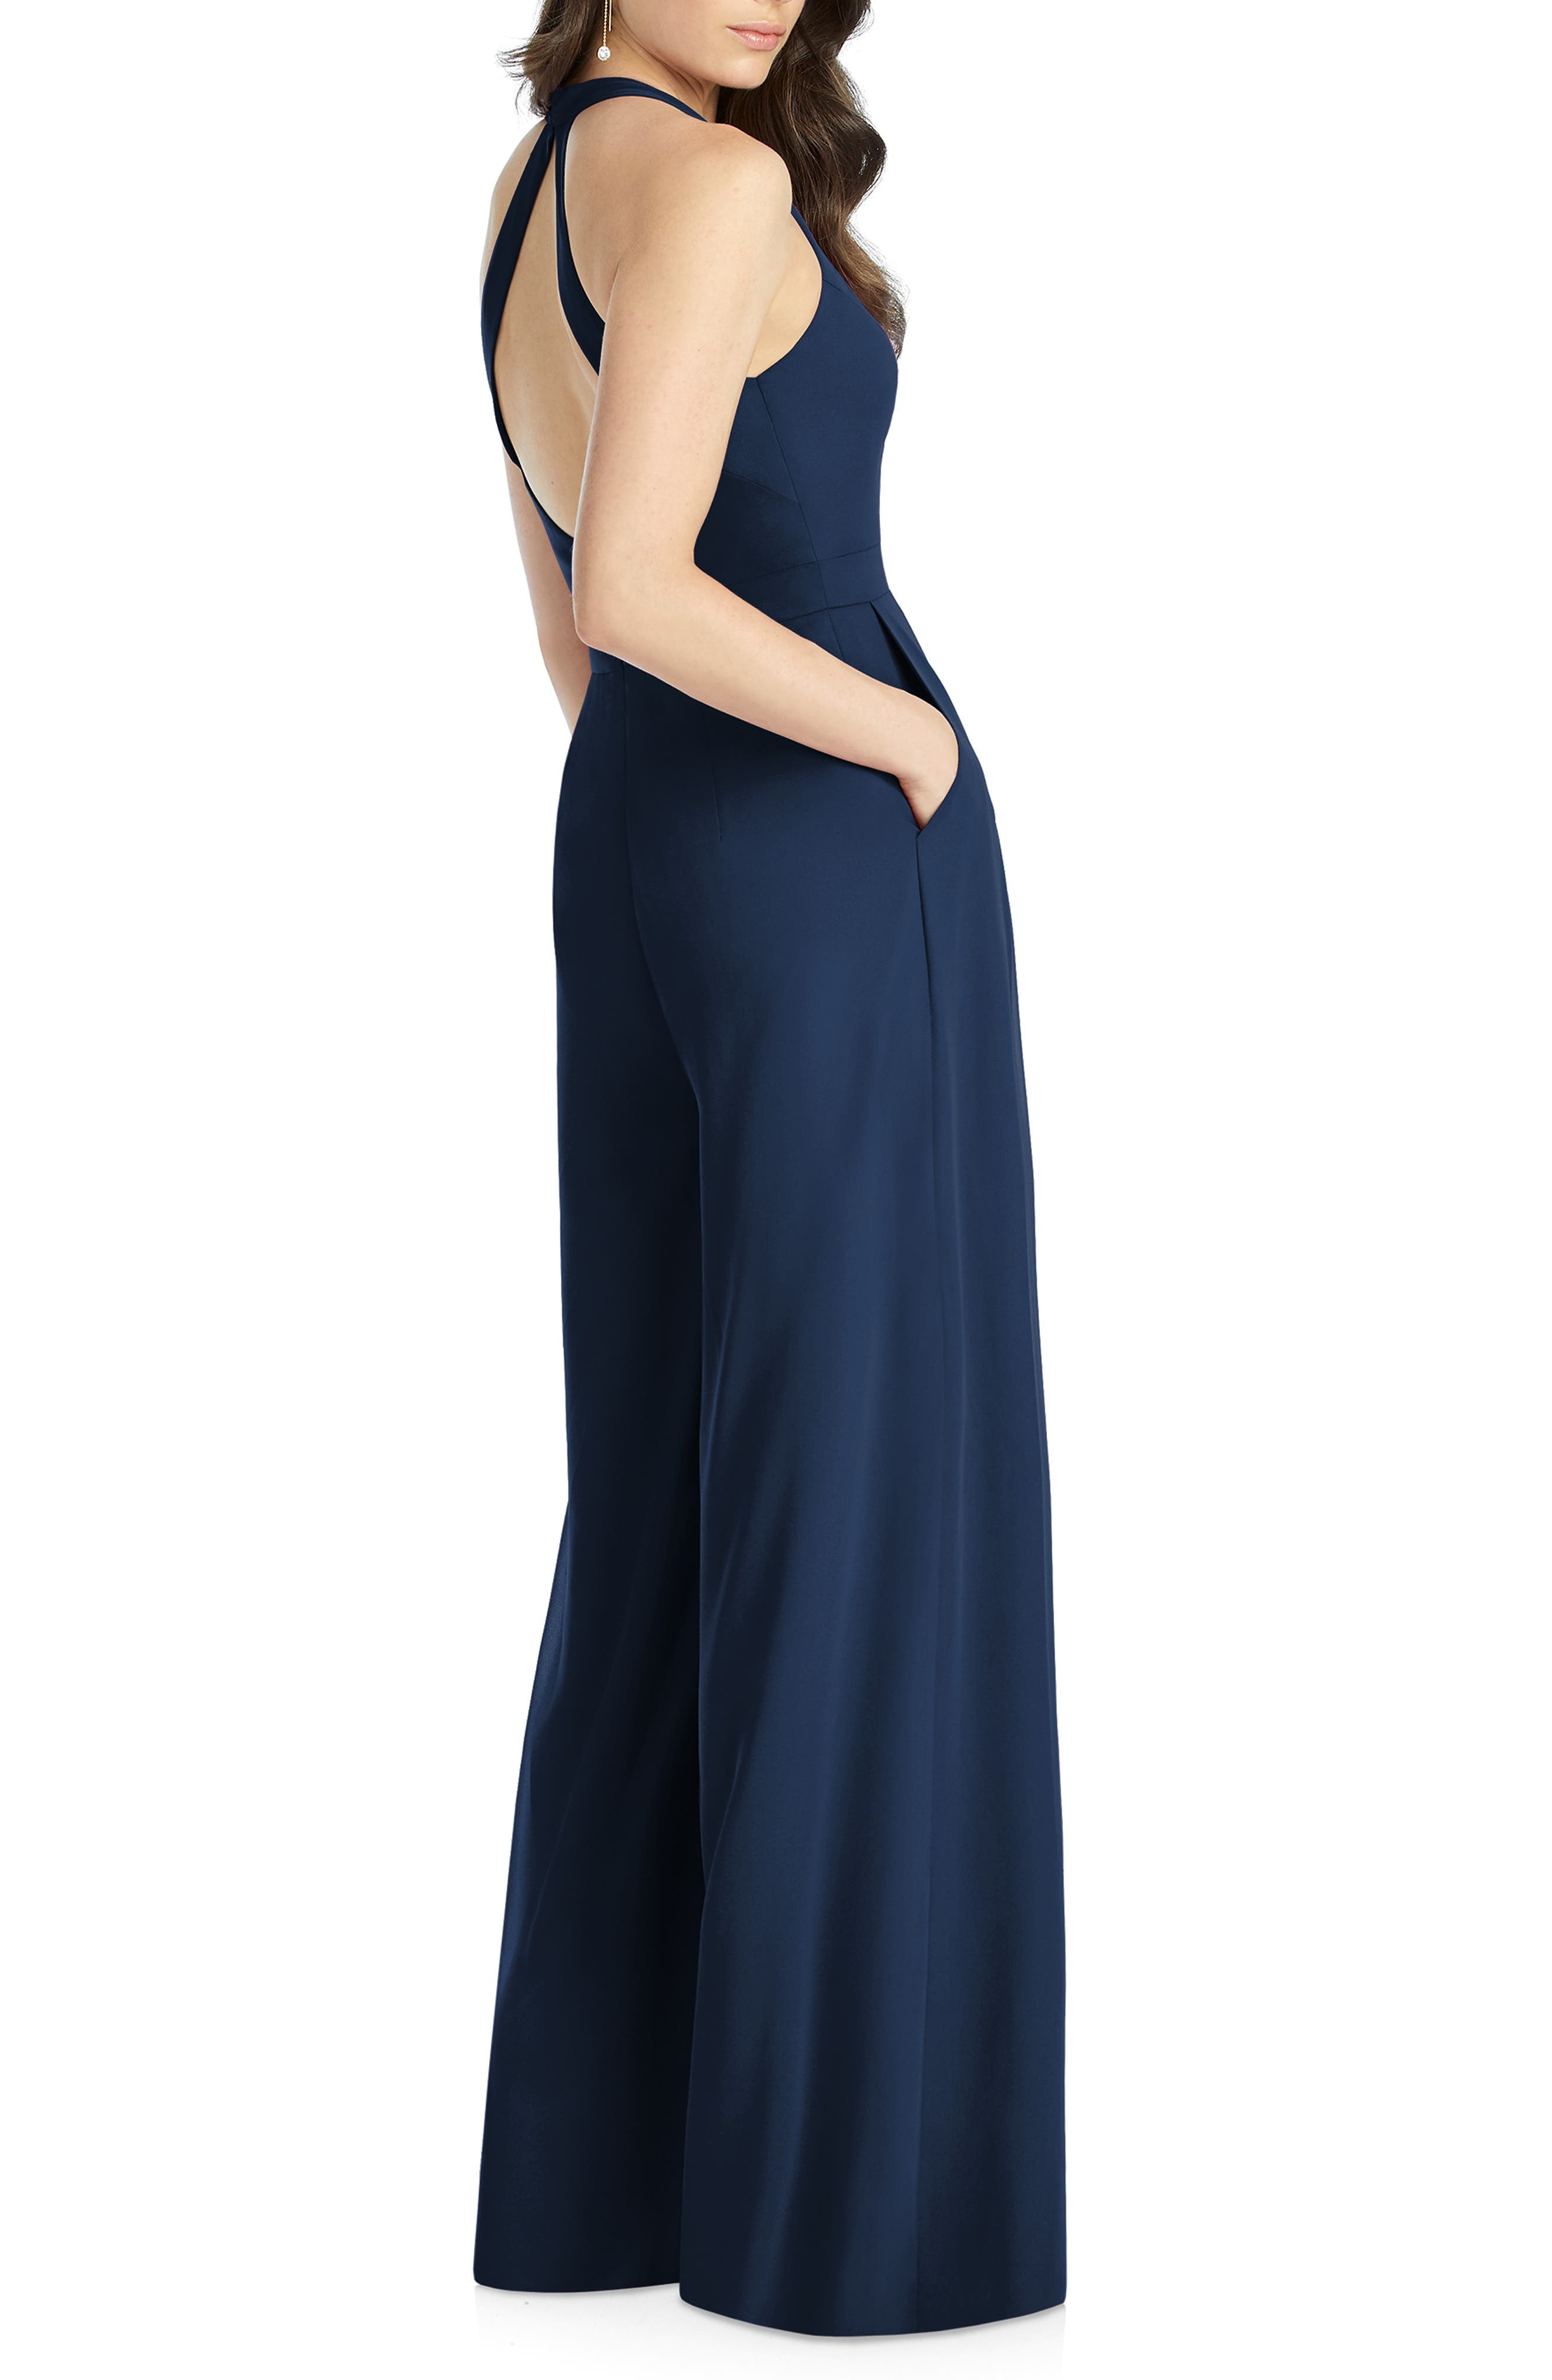 DESSY COLLECTION, Arielle V-Neck Lux Chiffon Jumpsuit, Alternate thumbnail 2, color, MIDNIGHT